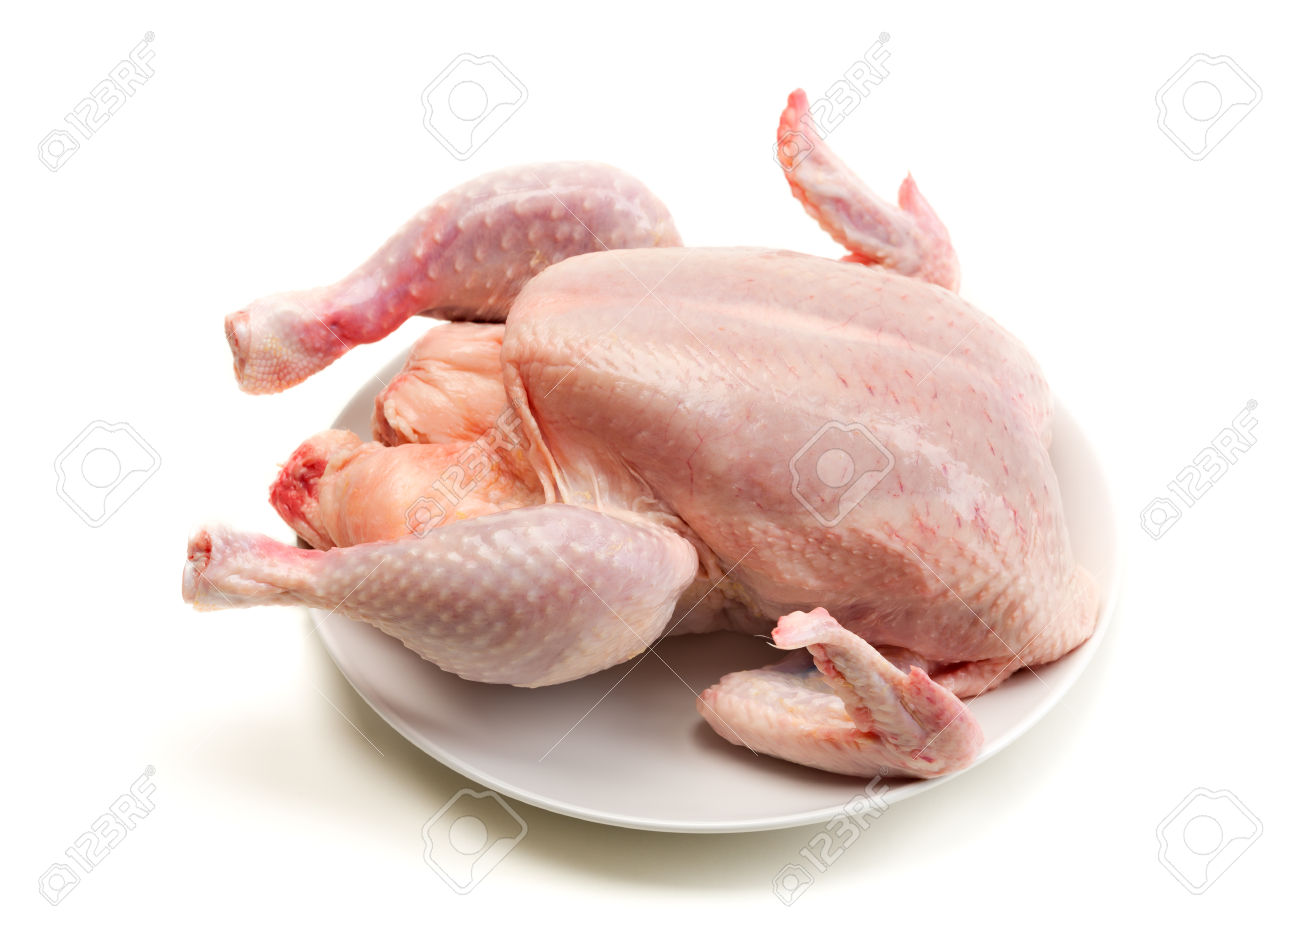 35307738-Carcass-of-broiler-chicken-on-a-plate-not-cooked-Isolate-on-white-background-Stock-Photo.jpg